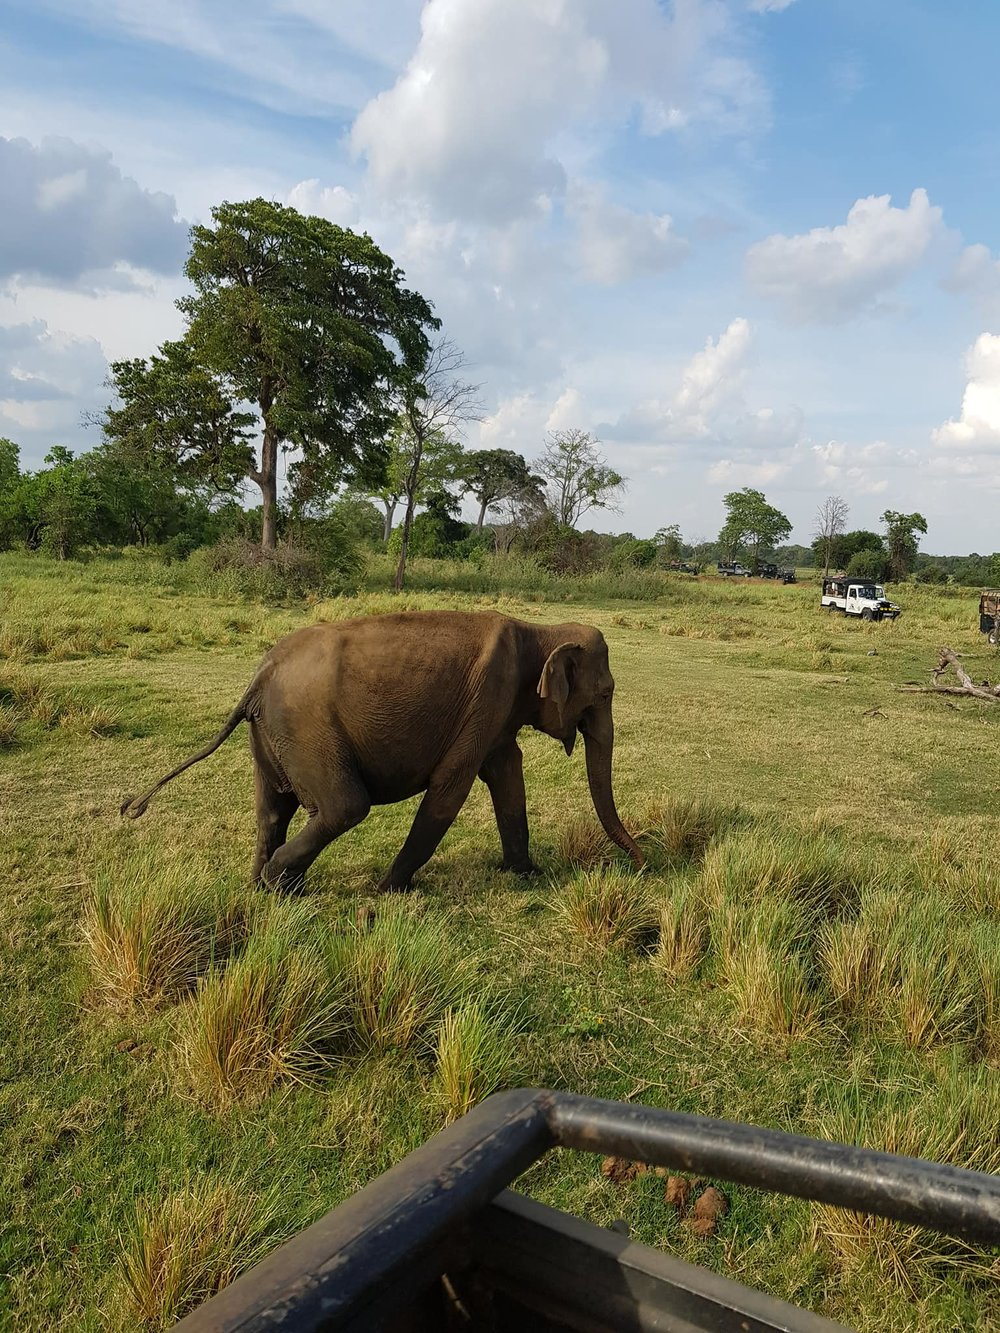 invite-to-paradise-sri-lanka-maldives-holiday-honeymoon-specialists-customer-guest-feedback-zane-lisa-butcher-wild-elephant-wildlife-safari-national-park.jpg